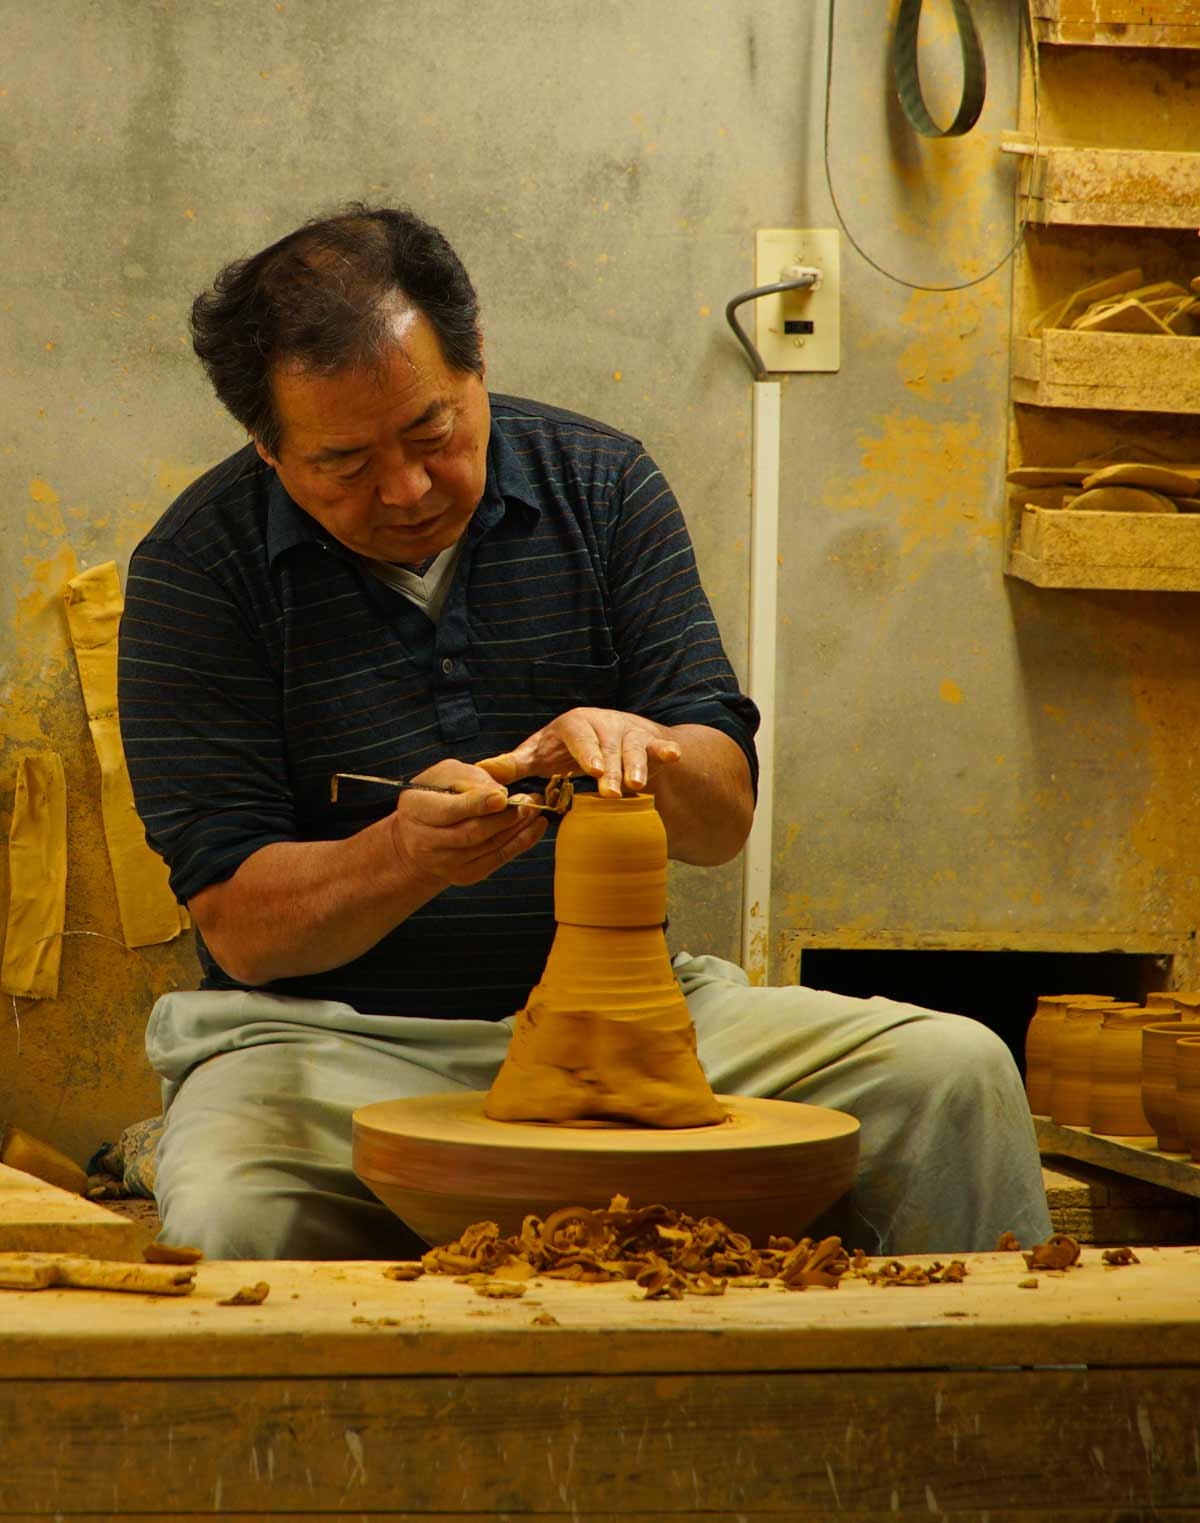 man making ontayaki pottery